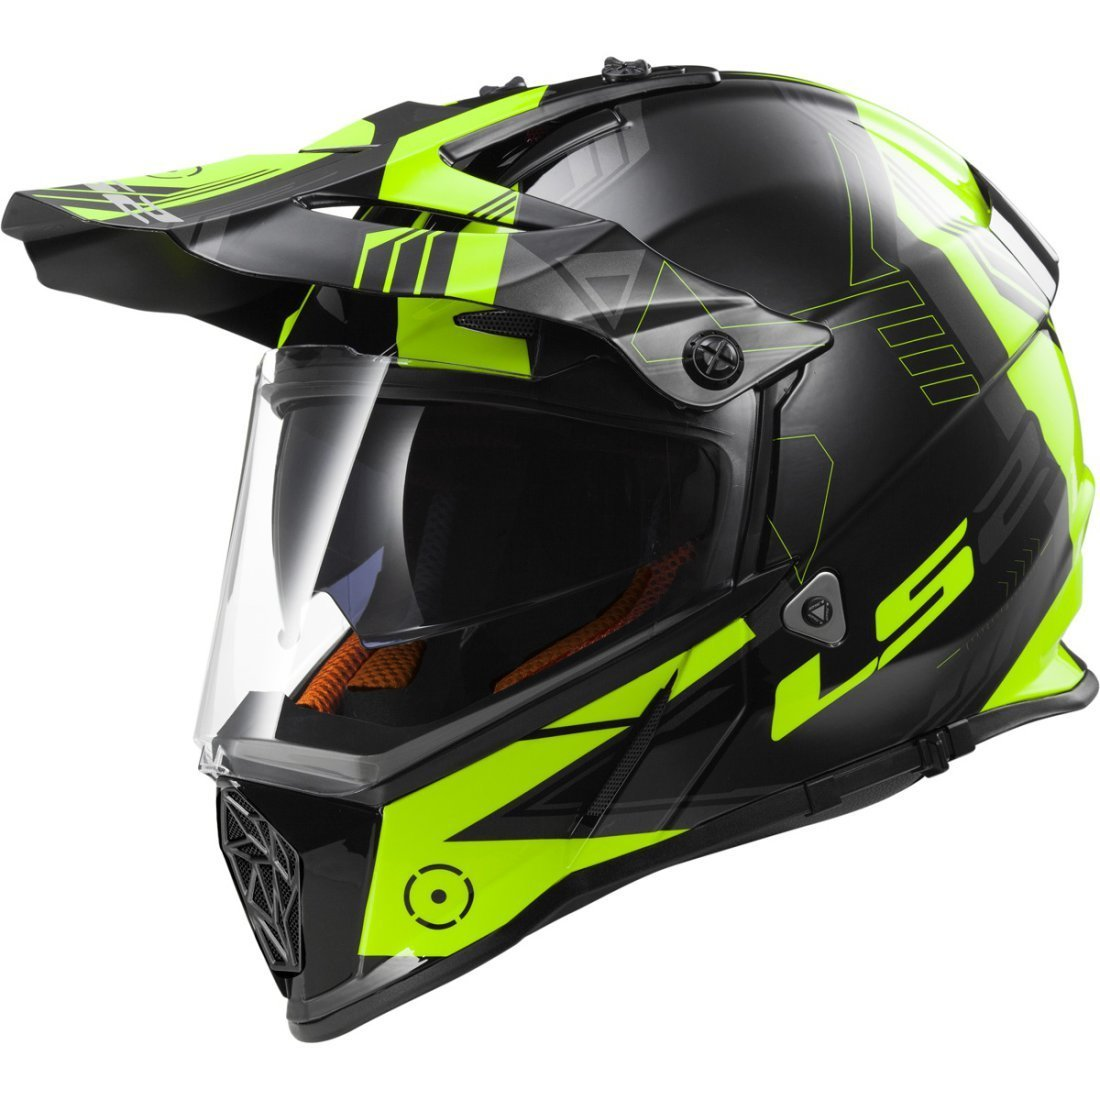 CASCO LS2 CROSS MX 436 PIONEER TRIGGER YELLOW